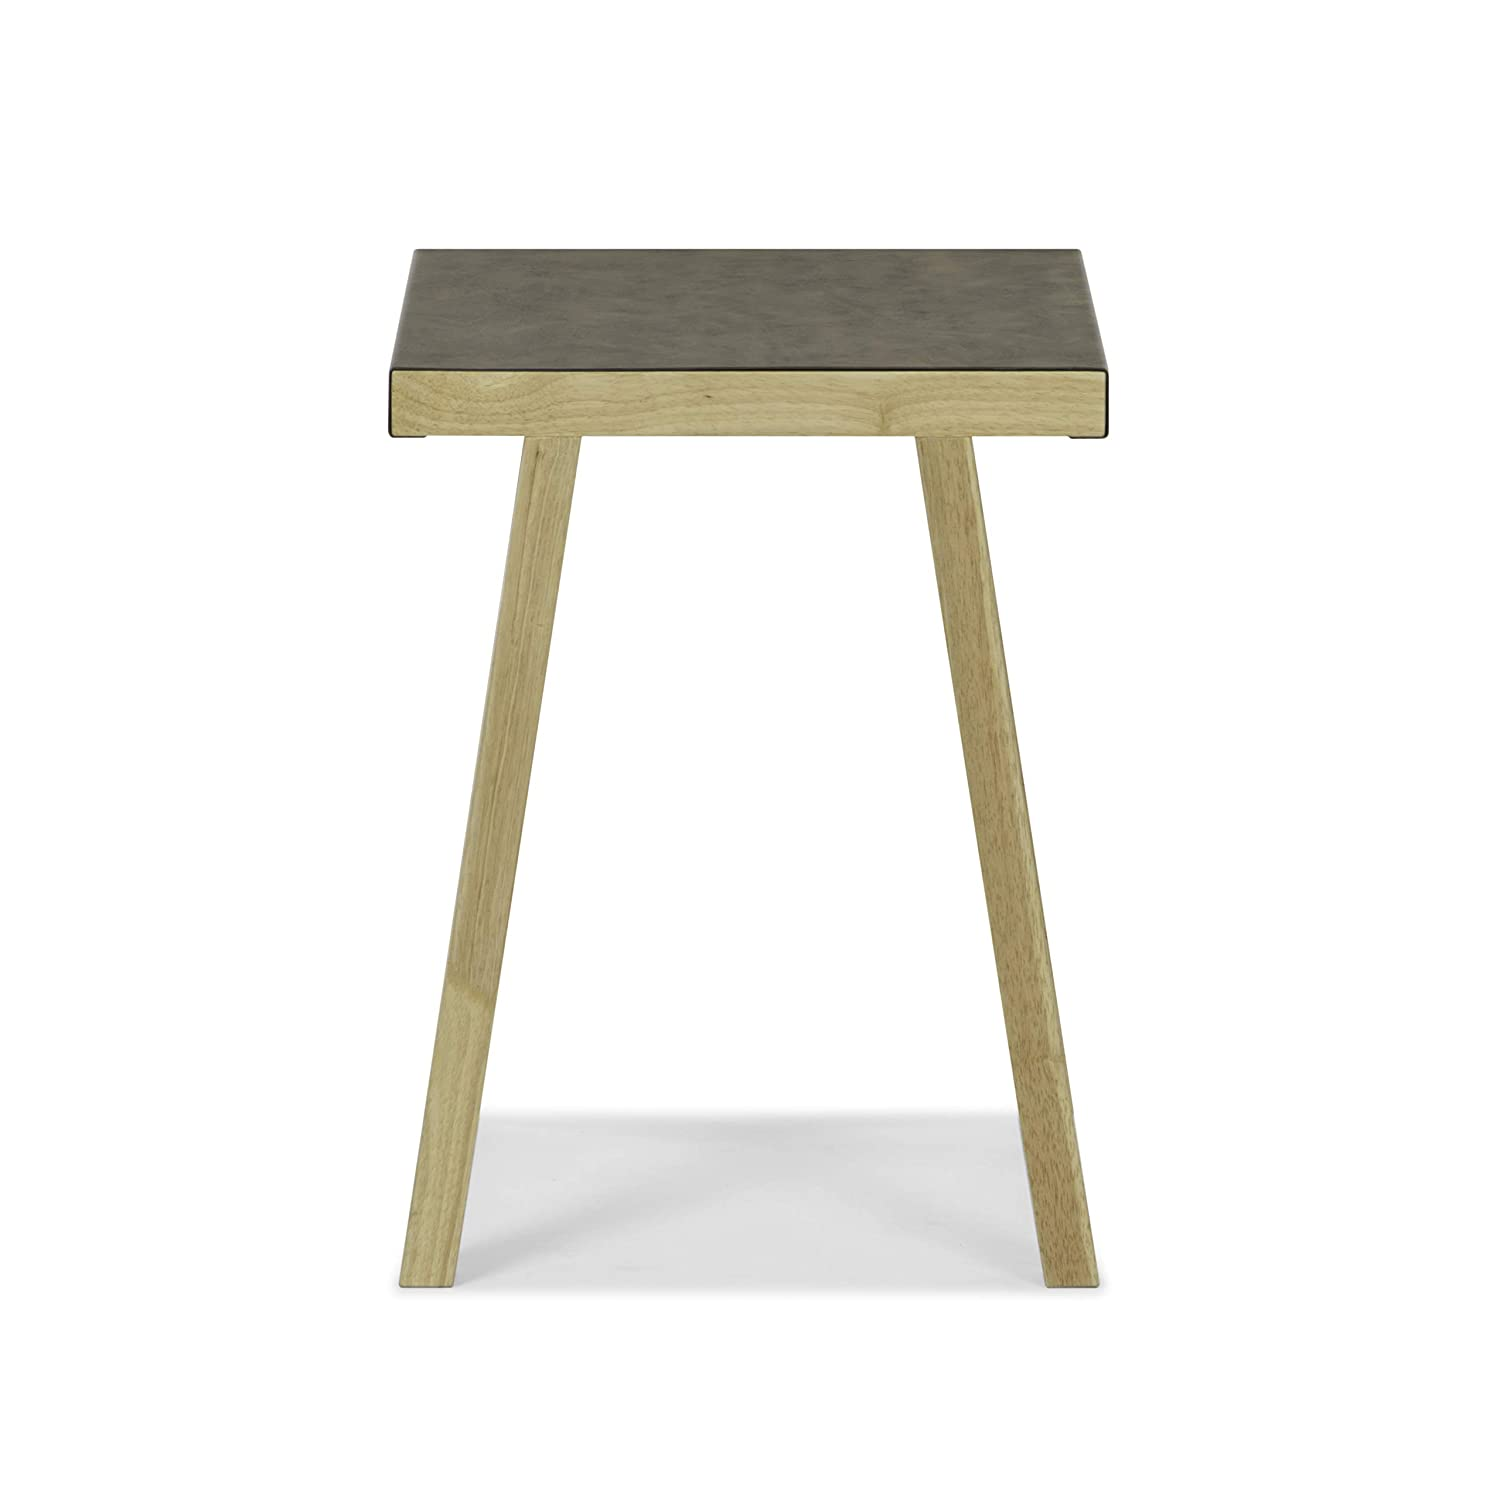 Side Living Bedroom Furniture Vibrant Products VP-010 Bedside Table Sunset Metal Wrapped Bronze Accent Table: use as End